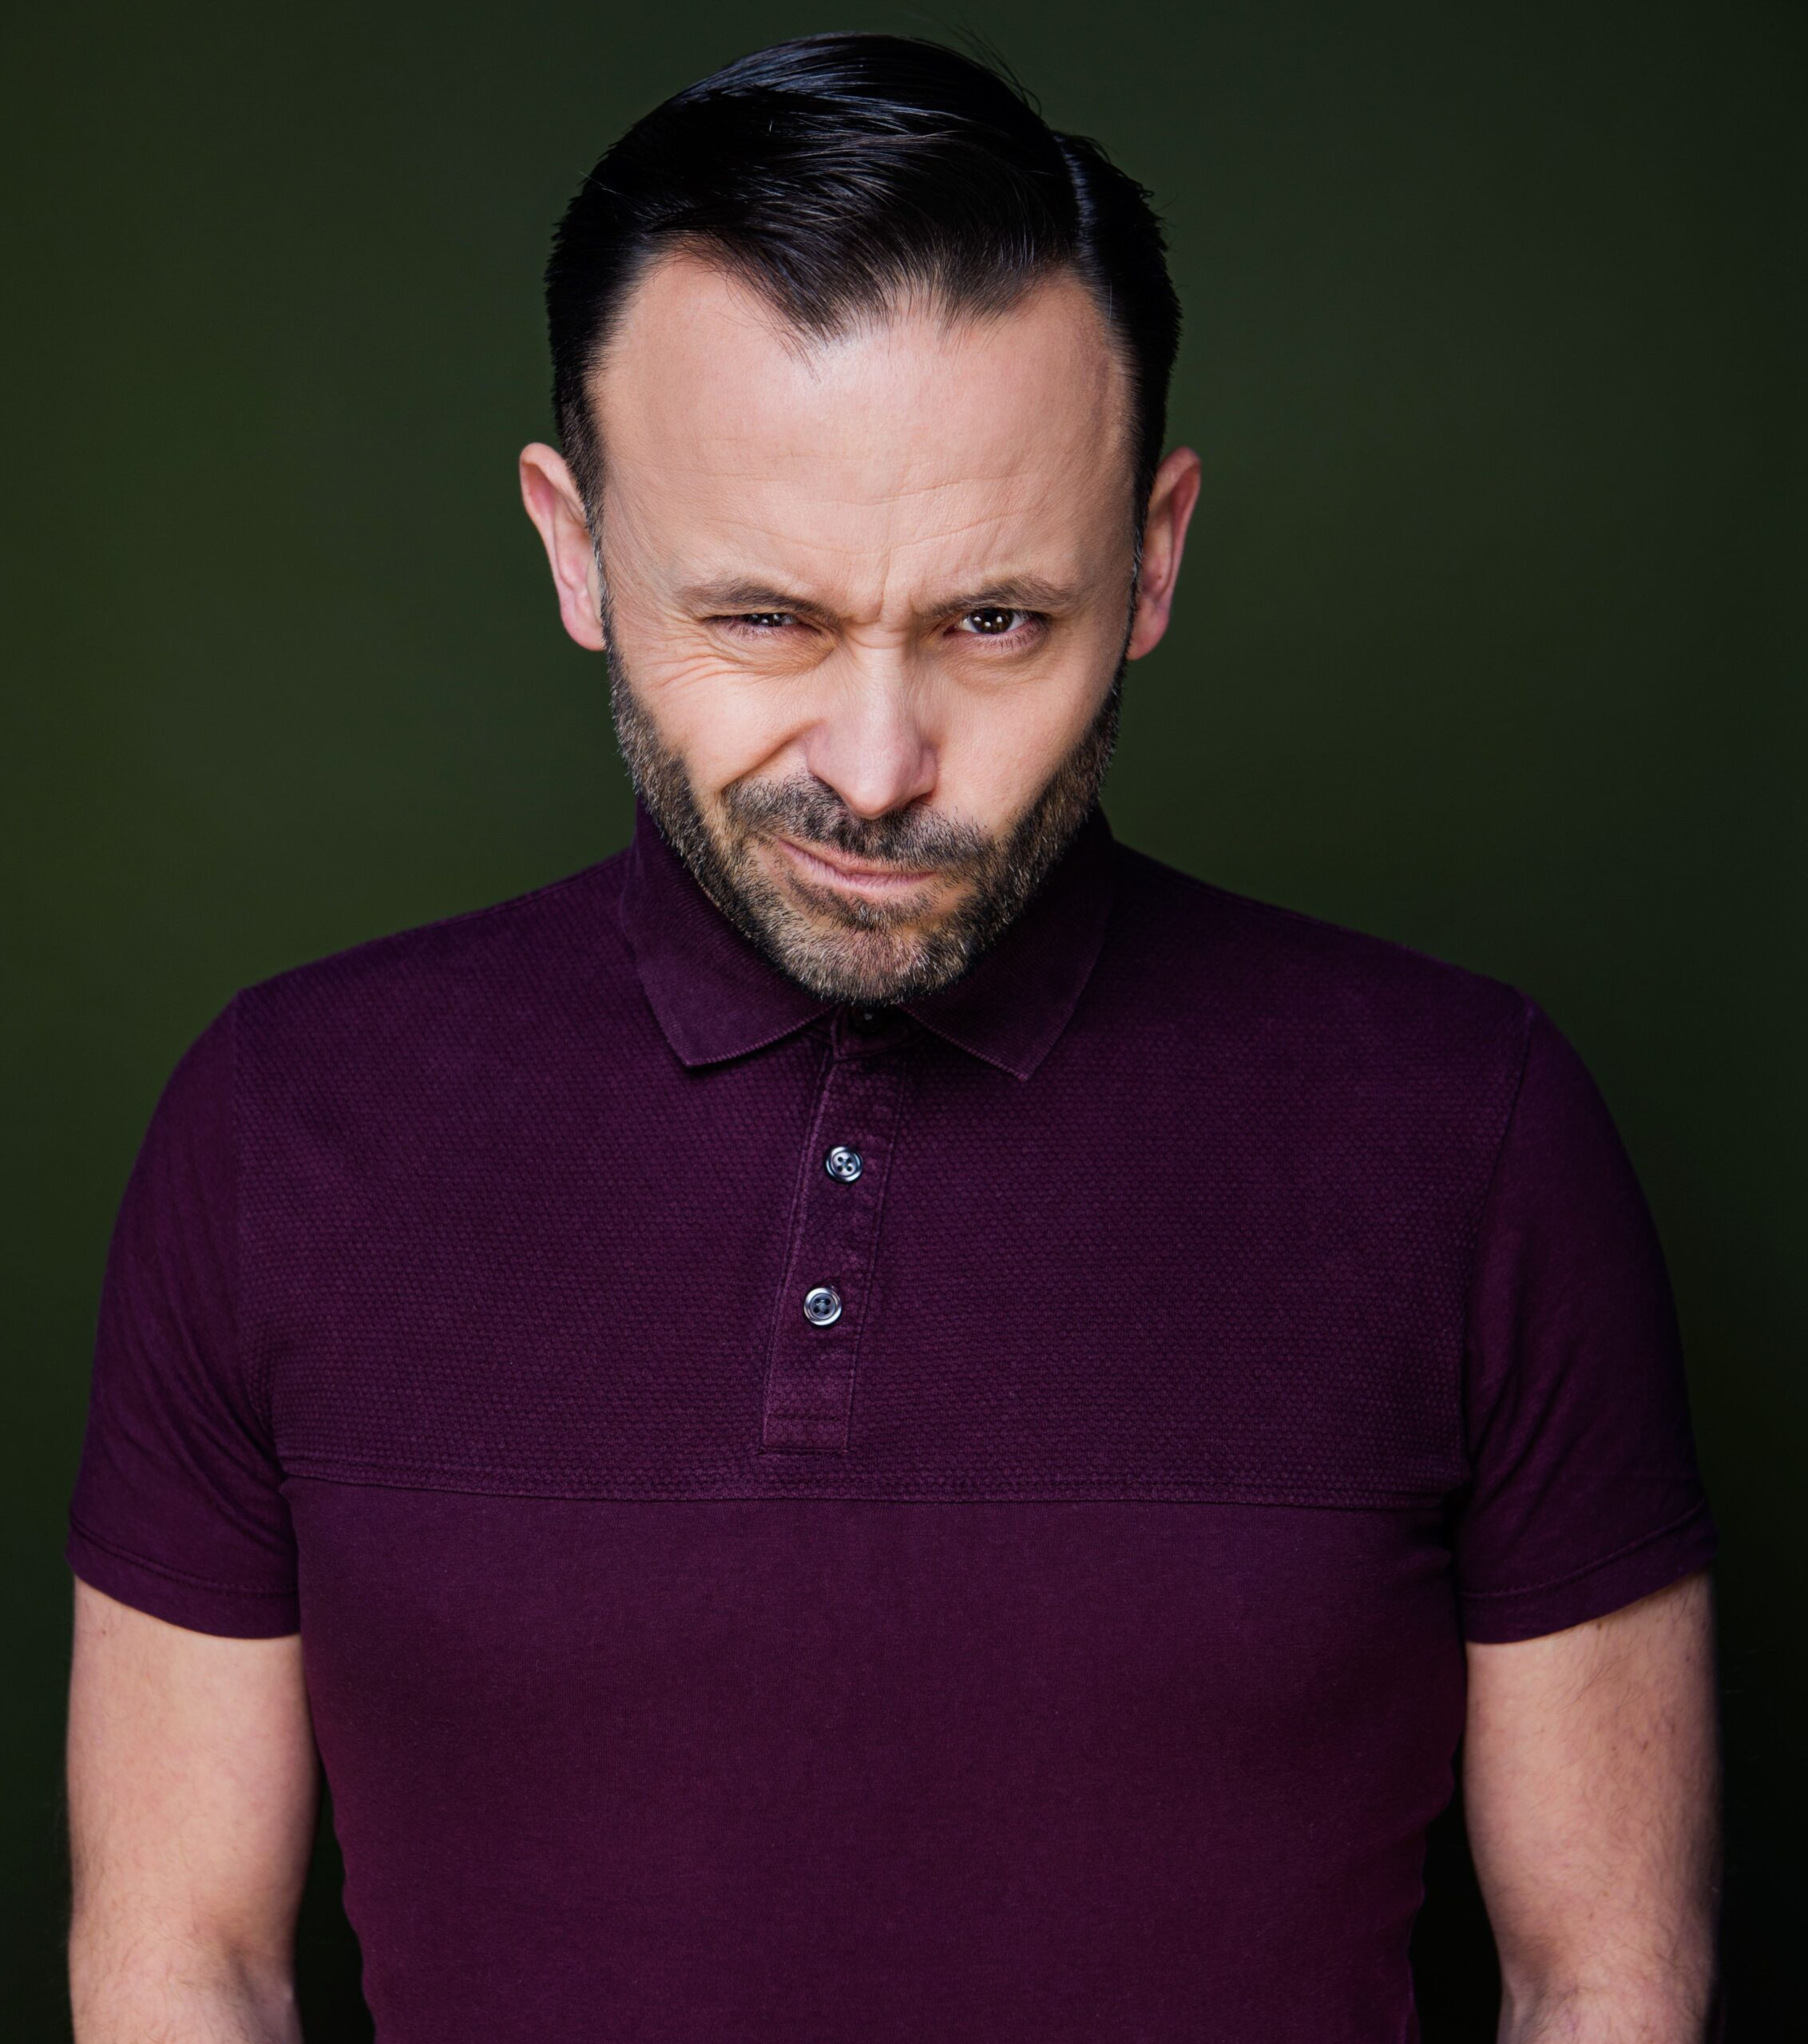 Geoff Norcott will perform at Southport Comedy Festival 2021